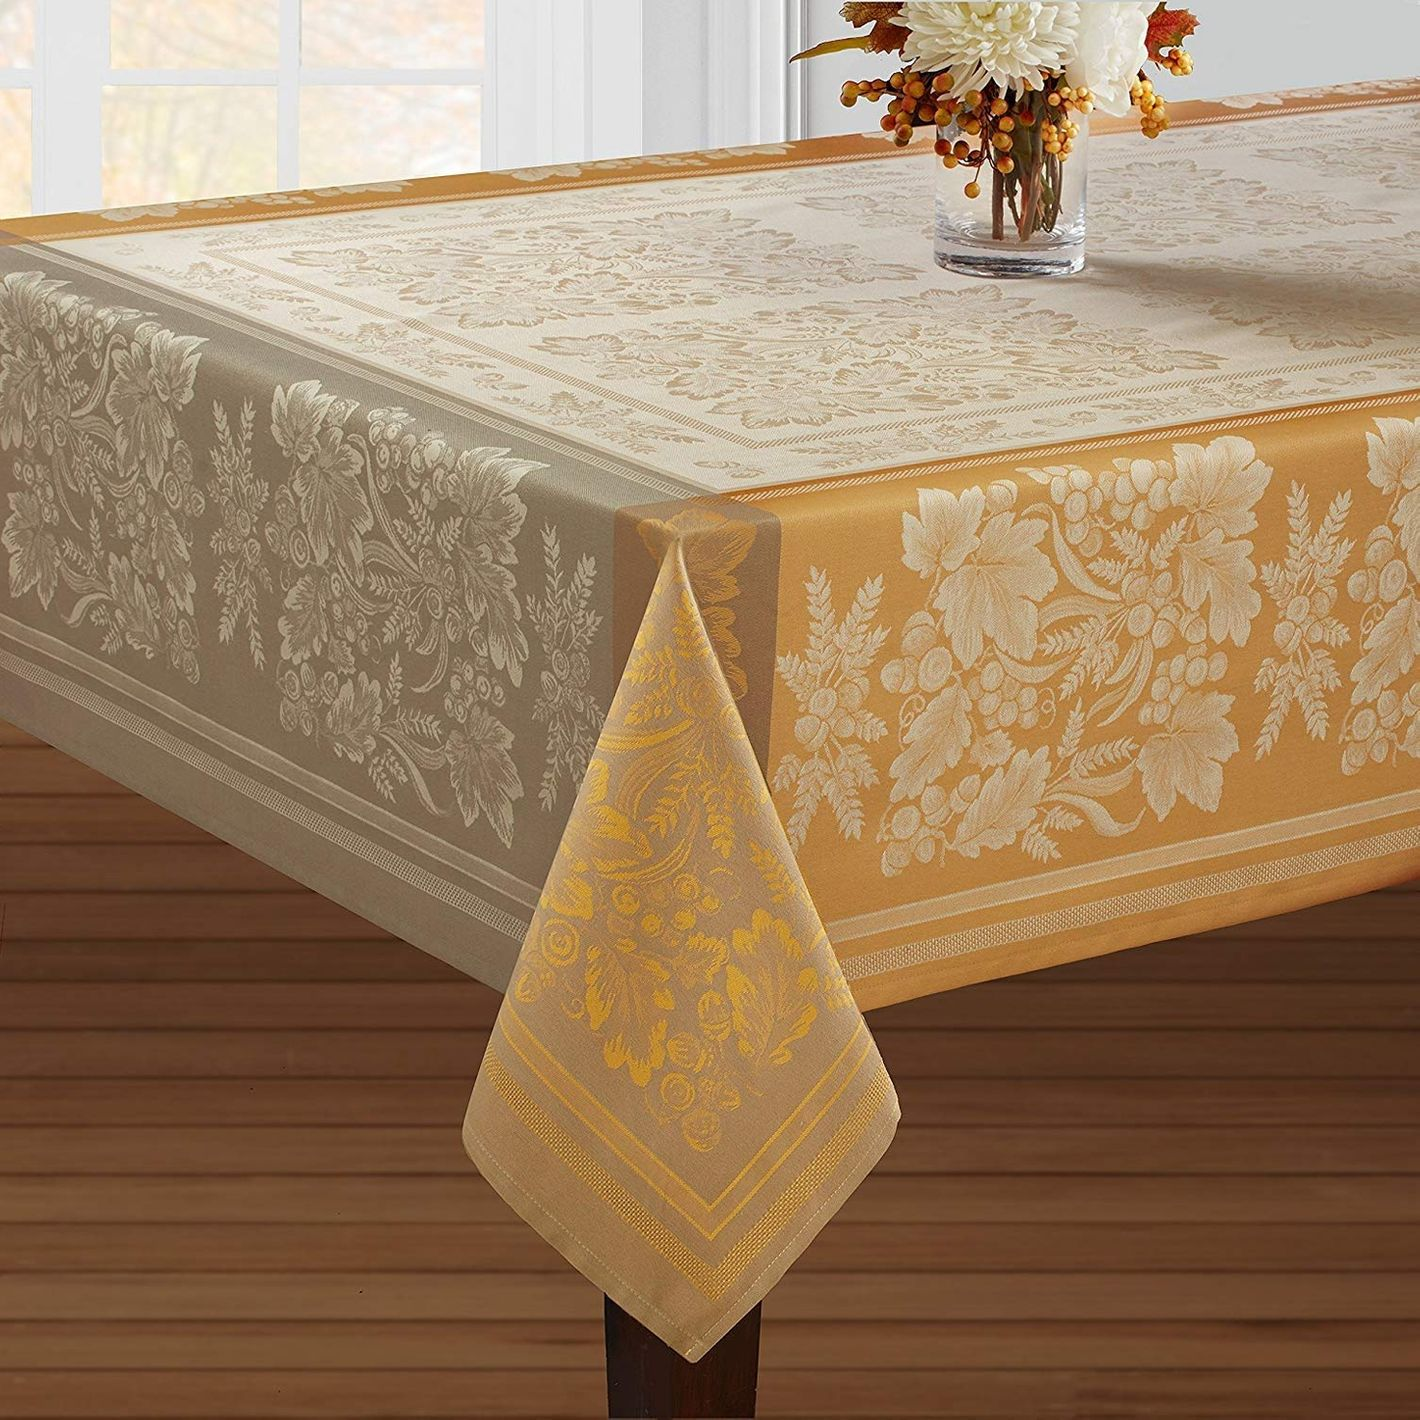 Benson Mills Gathering Engineered Jacquard Tablecloth For Harvest, Fall and Thanksgiving